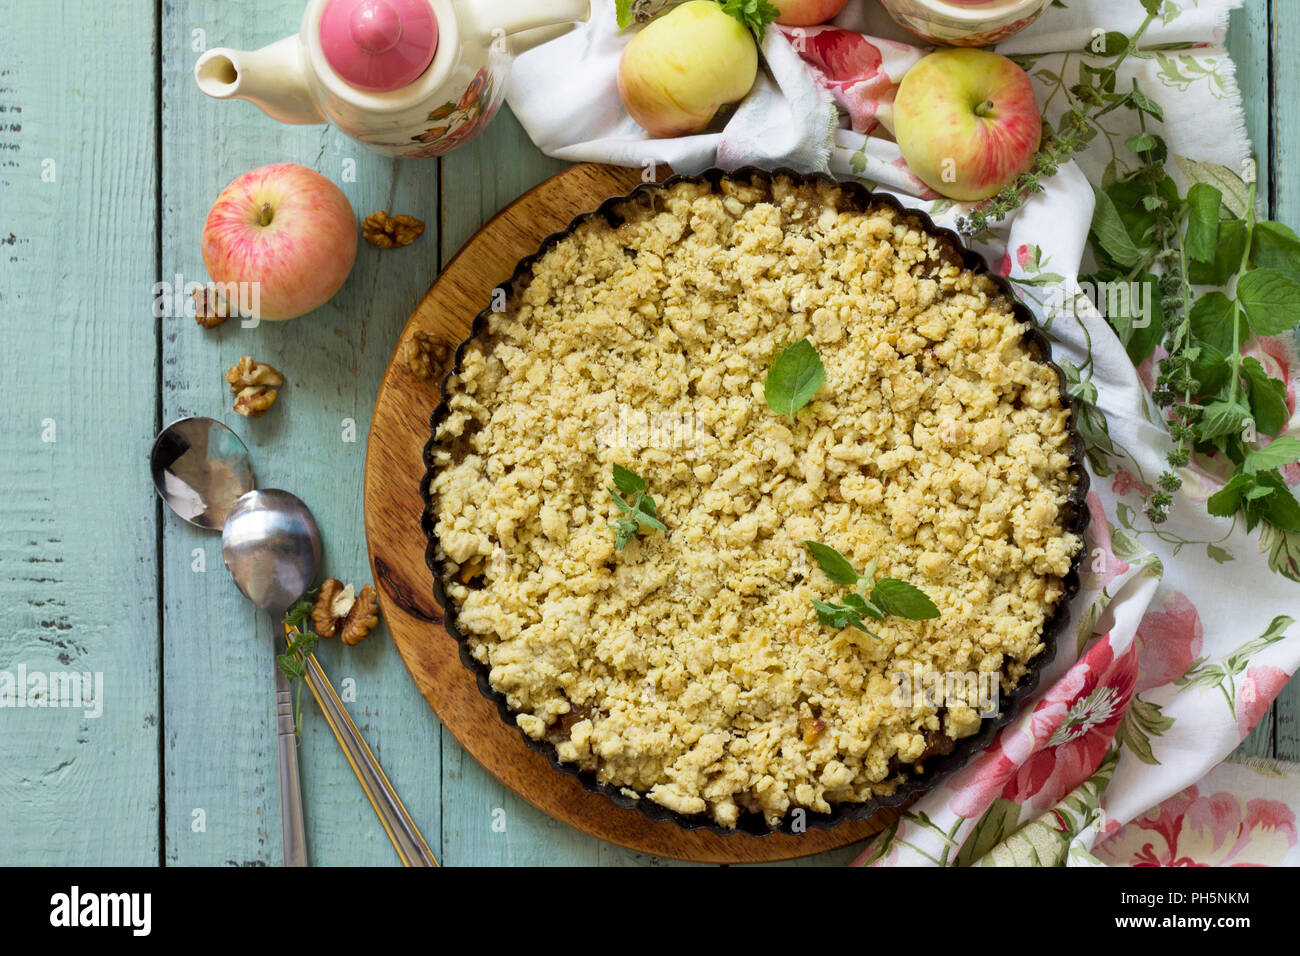 Traditional English cuisine. Apples crumble, crisp in baking dish on wooden table. Top view flat lay background. - Stock Image